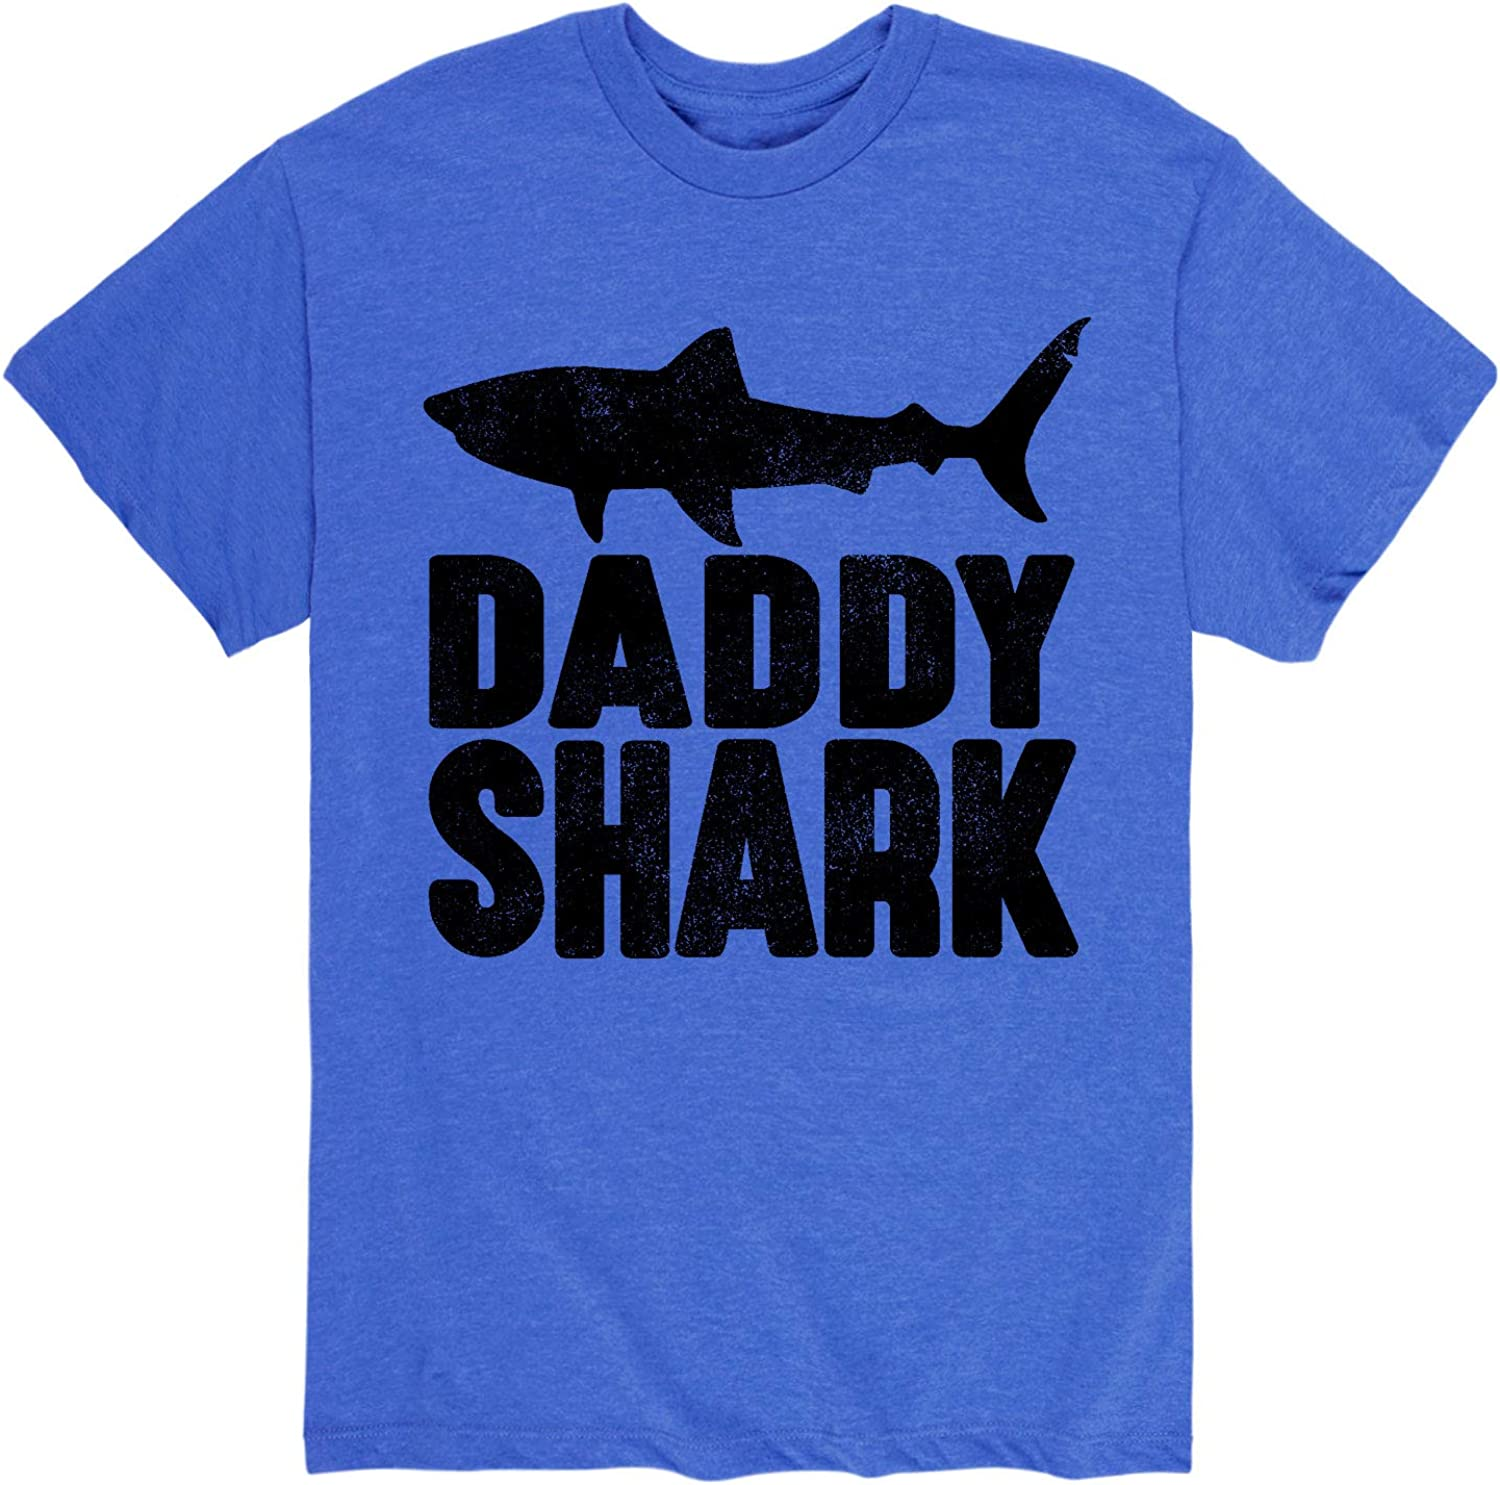 Daddy Shark - Men's Short Sleeve Graphic T-Shirt